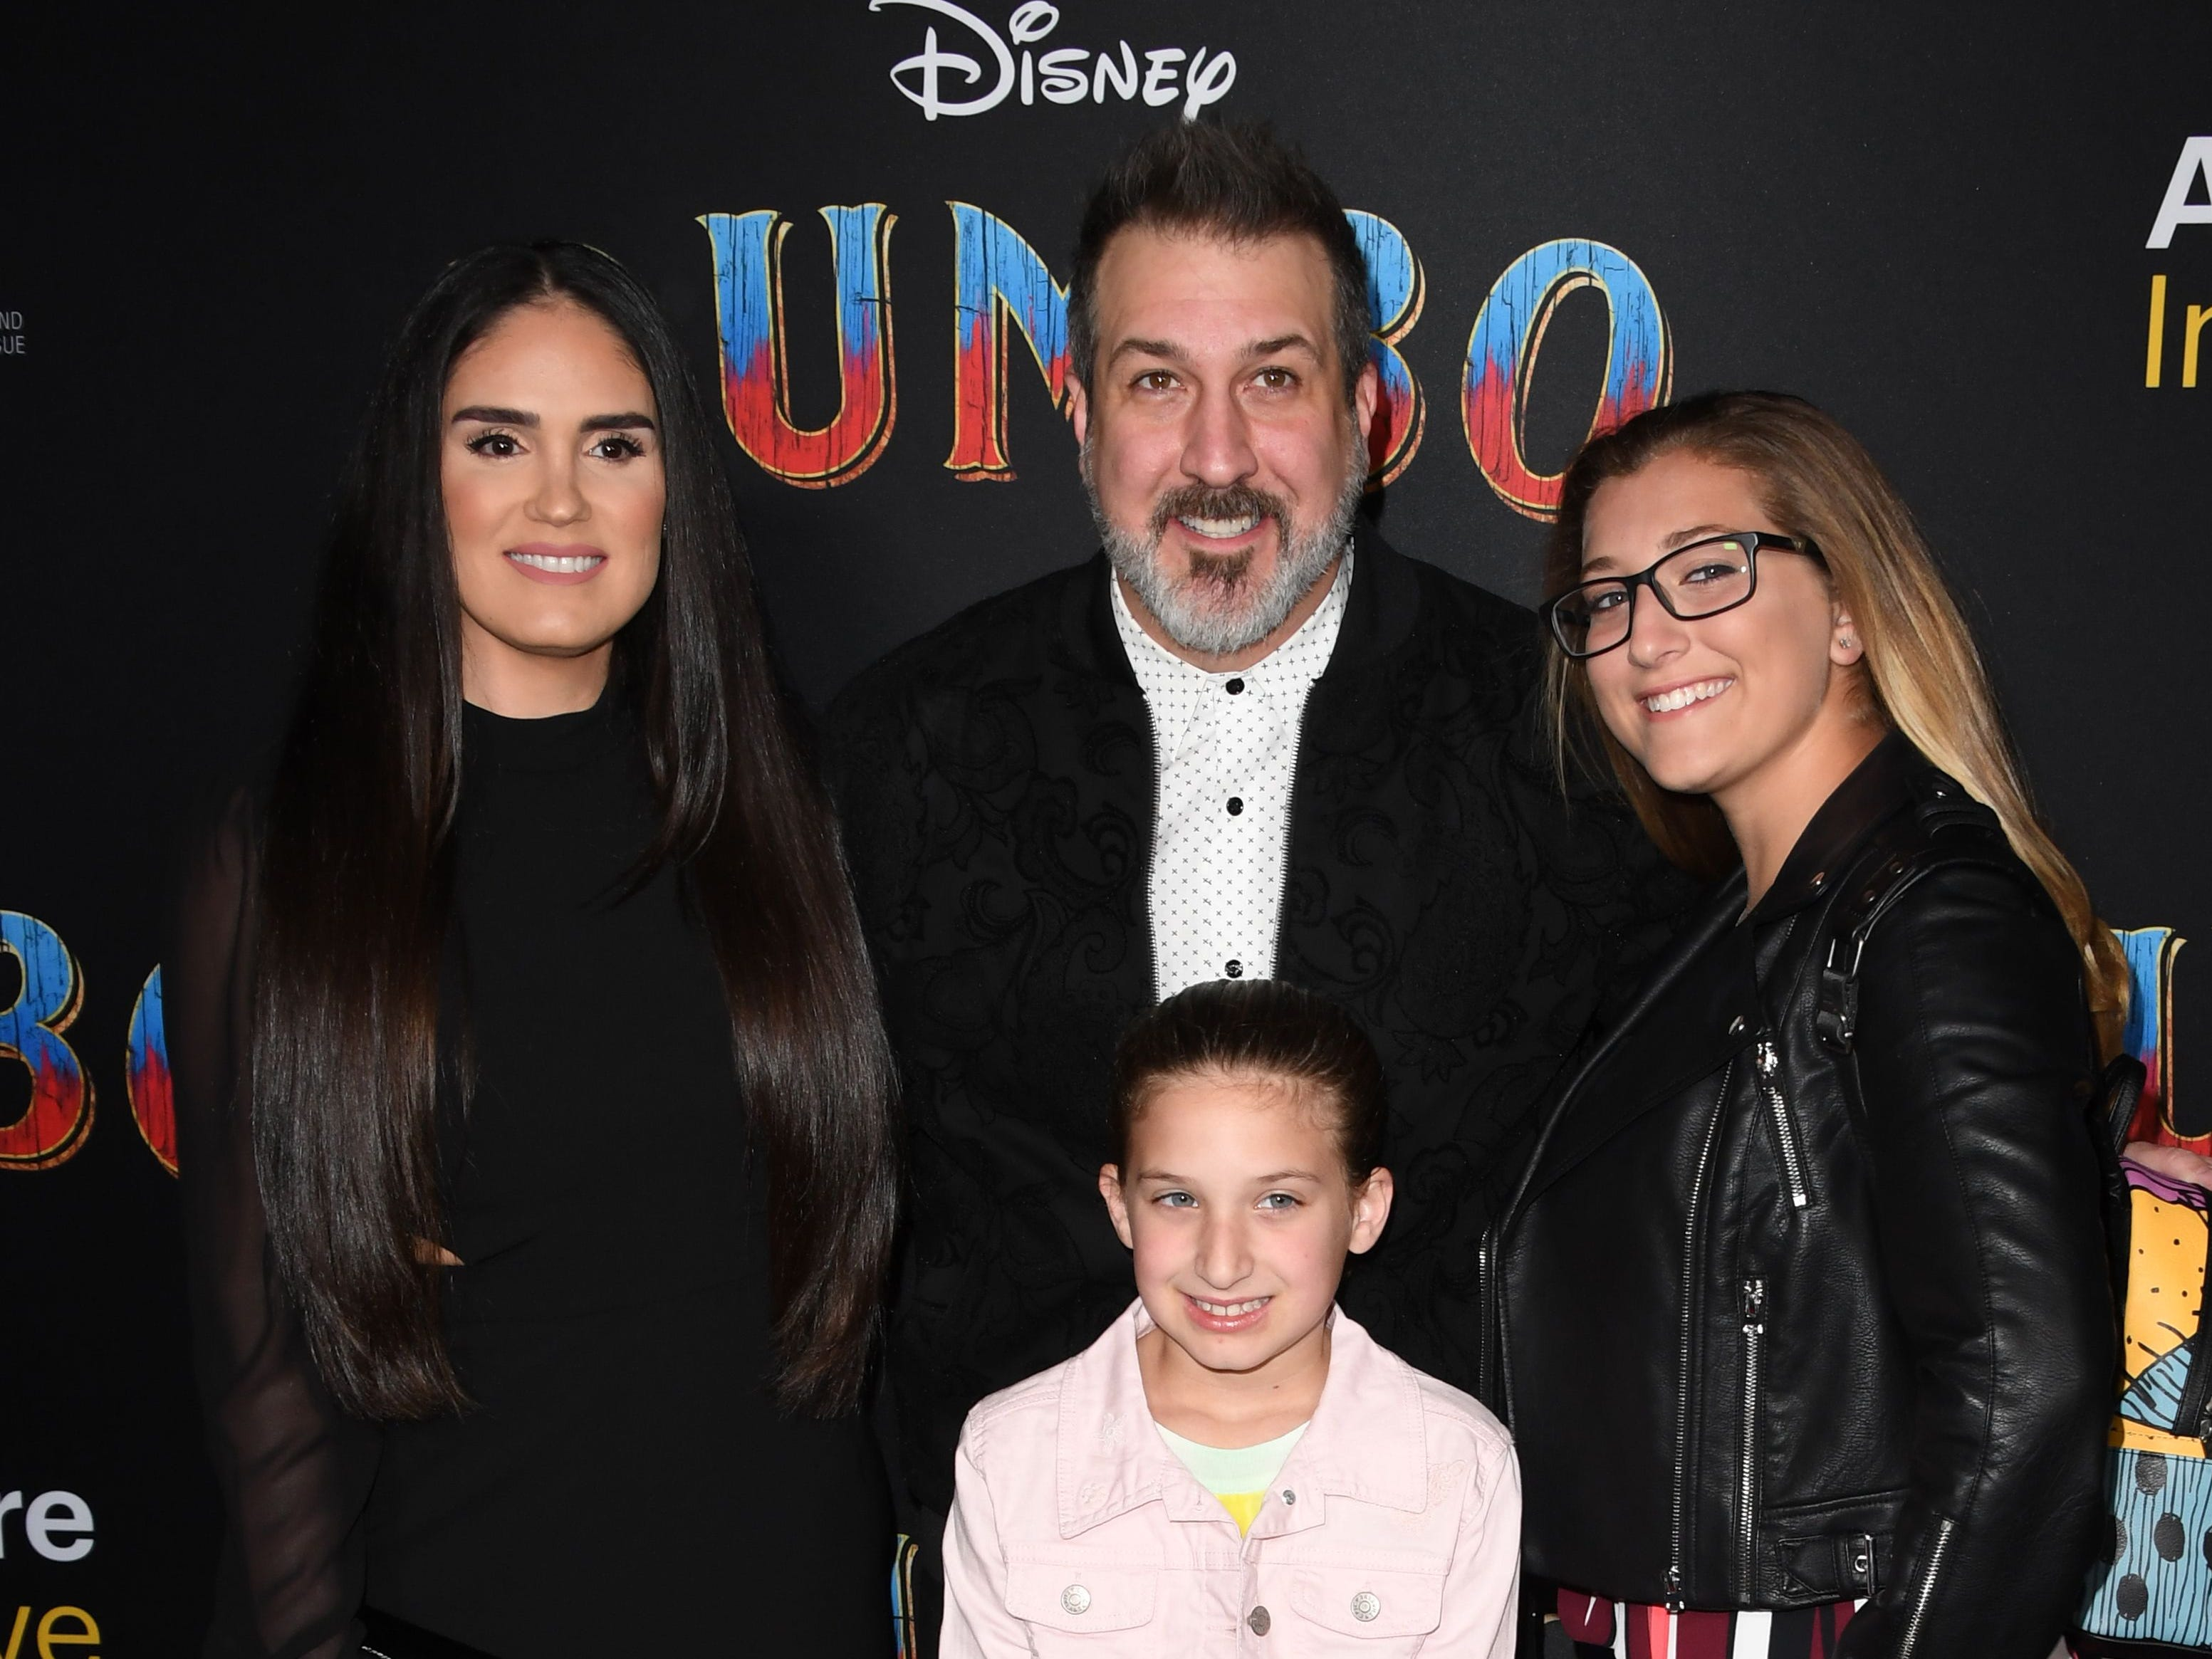 """US singer Joey Fatone (C) arrives with Izabel Araujo (L) and daughters Briahna Fatone (R) and Kloey Fatone for the world premiere of Disney's """"Dumbo"""" at El Capitan theatre on March 11, 2019 in Hollywood. (Photo by Robyn Beck / AFP)ROBYN BECK/AFP/Getty Images ORG XMIT: Premiere ORIG FILE ID: AFP_1EI2K6"""